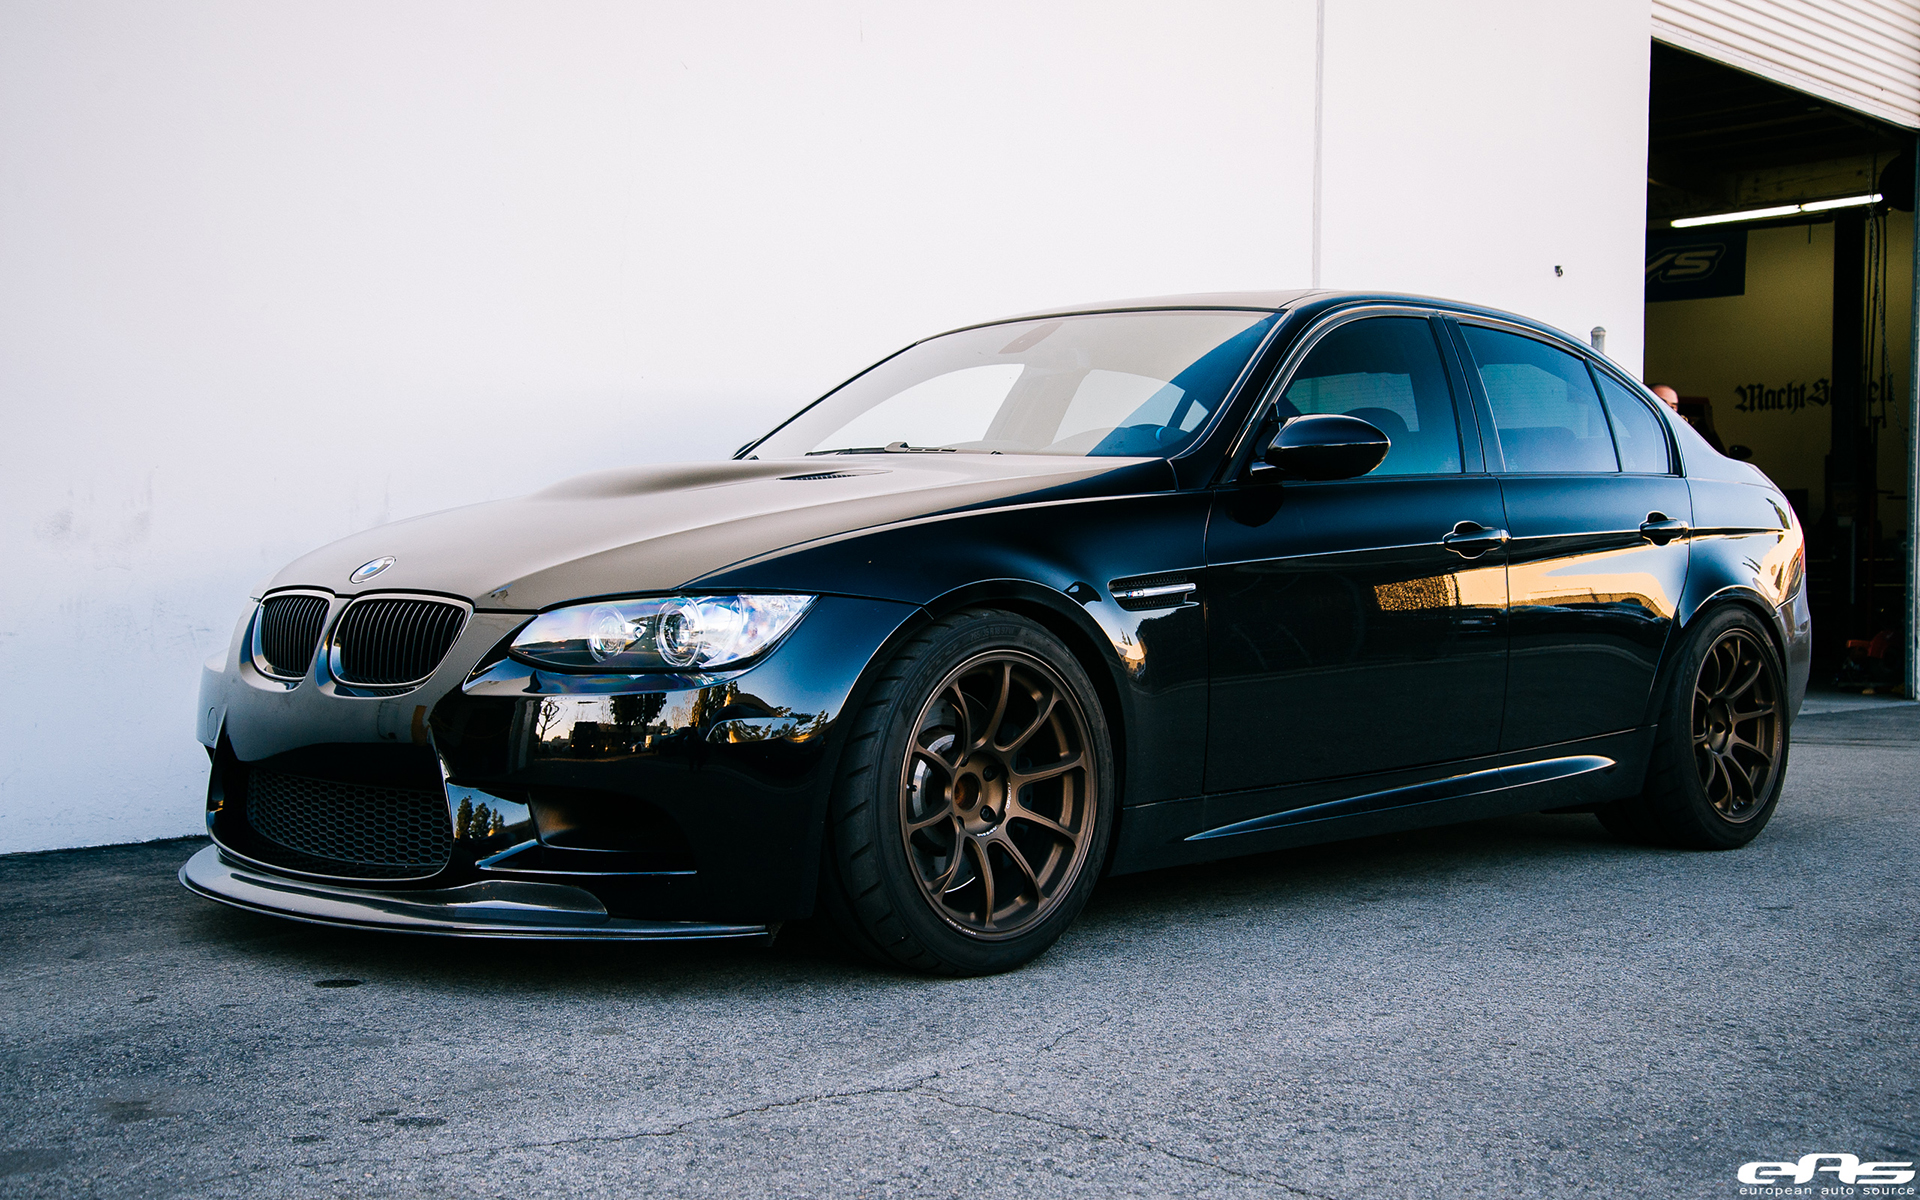 jerez black e90 bmw m3 by eas looks smashing bmw car tuning. Black Bedroom Furniture Sets. Home Design Ideas